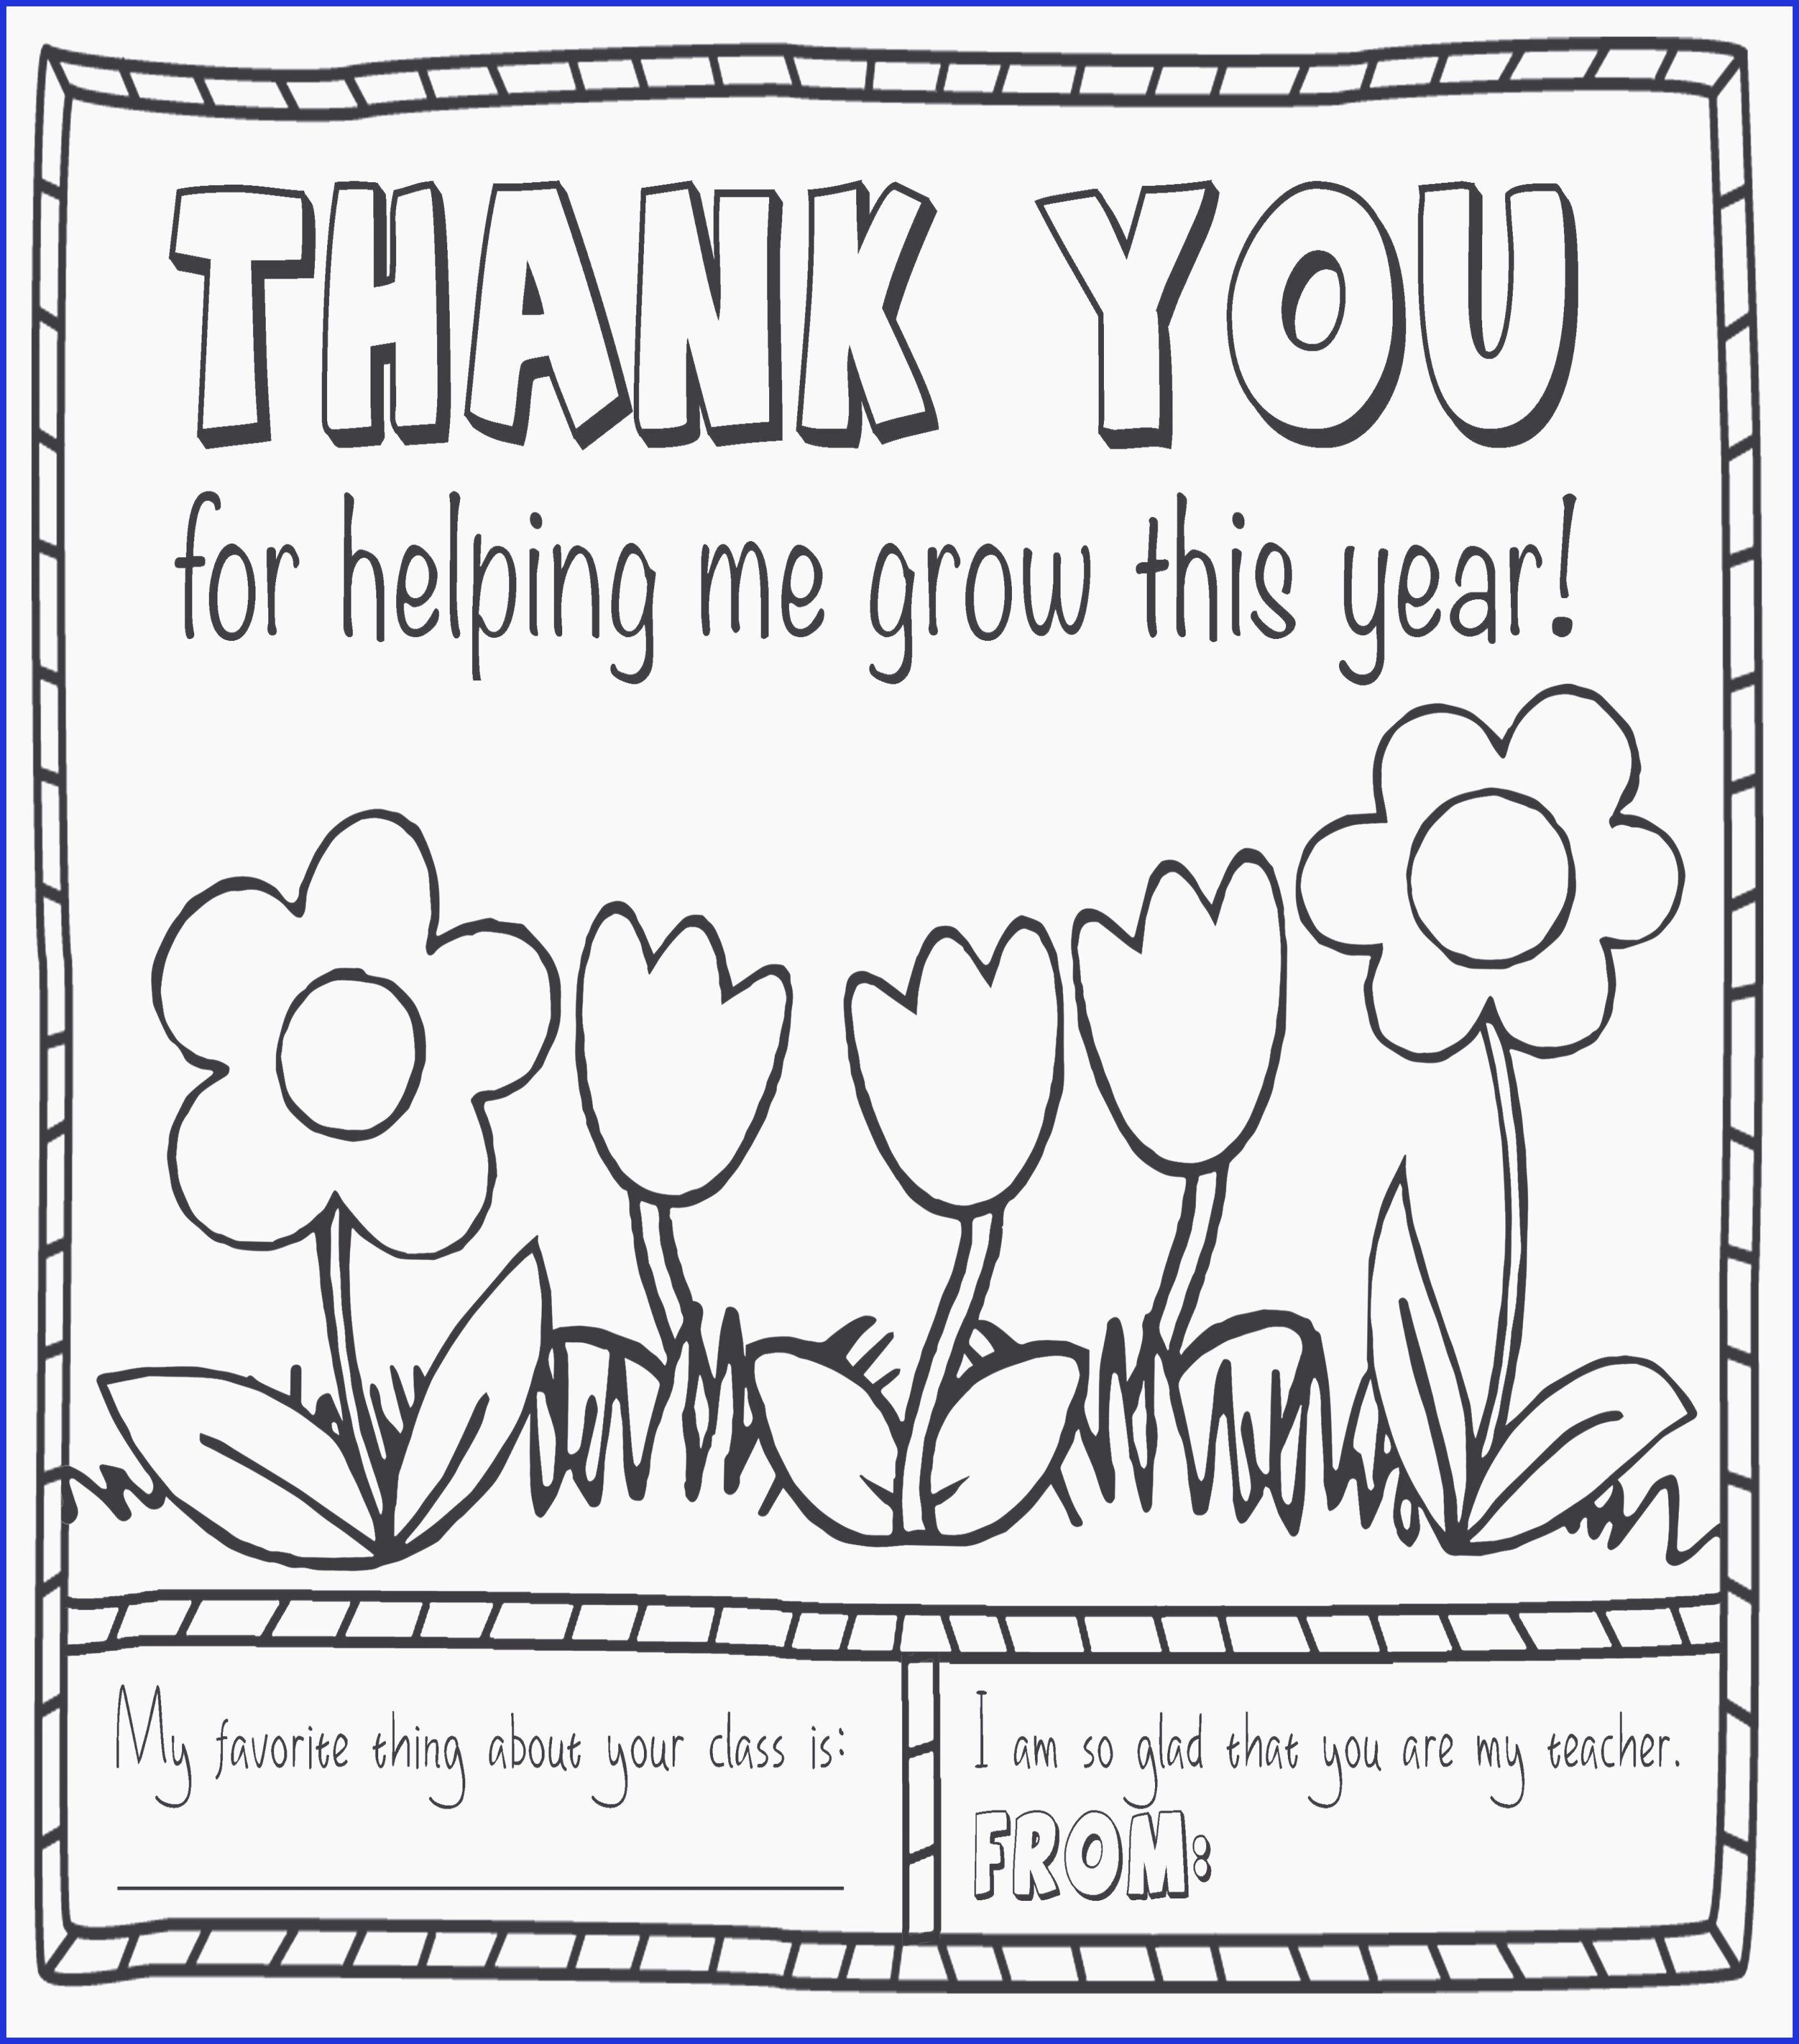 Teacher Appreciation Printables Awesome Thank You Coloring Pages Iwor In 2020 Teacher Appreciation Printables Teacher Appreciation Cards Coloring Pages For Teenagers